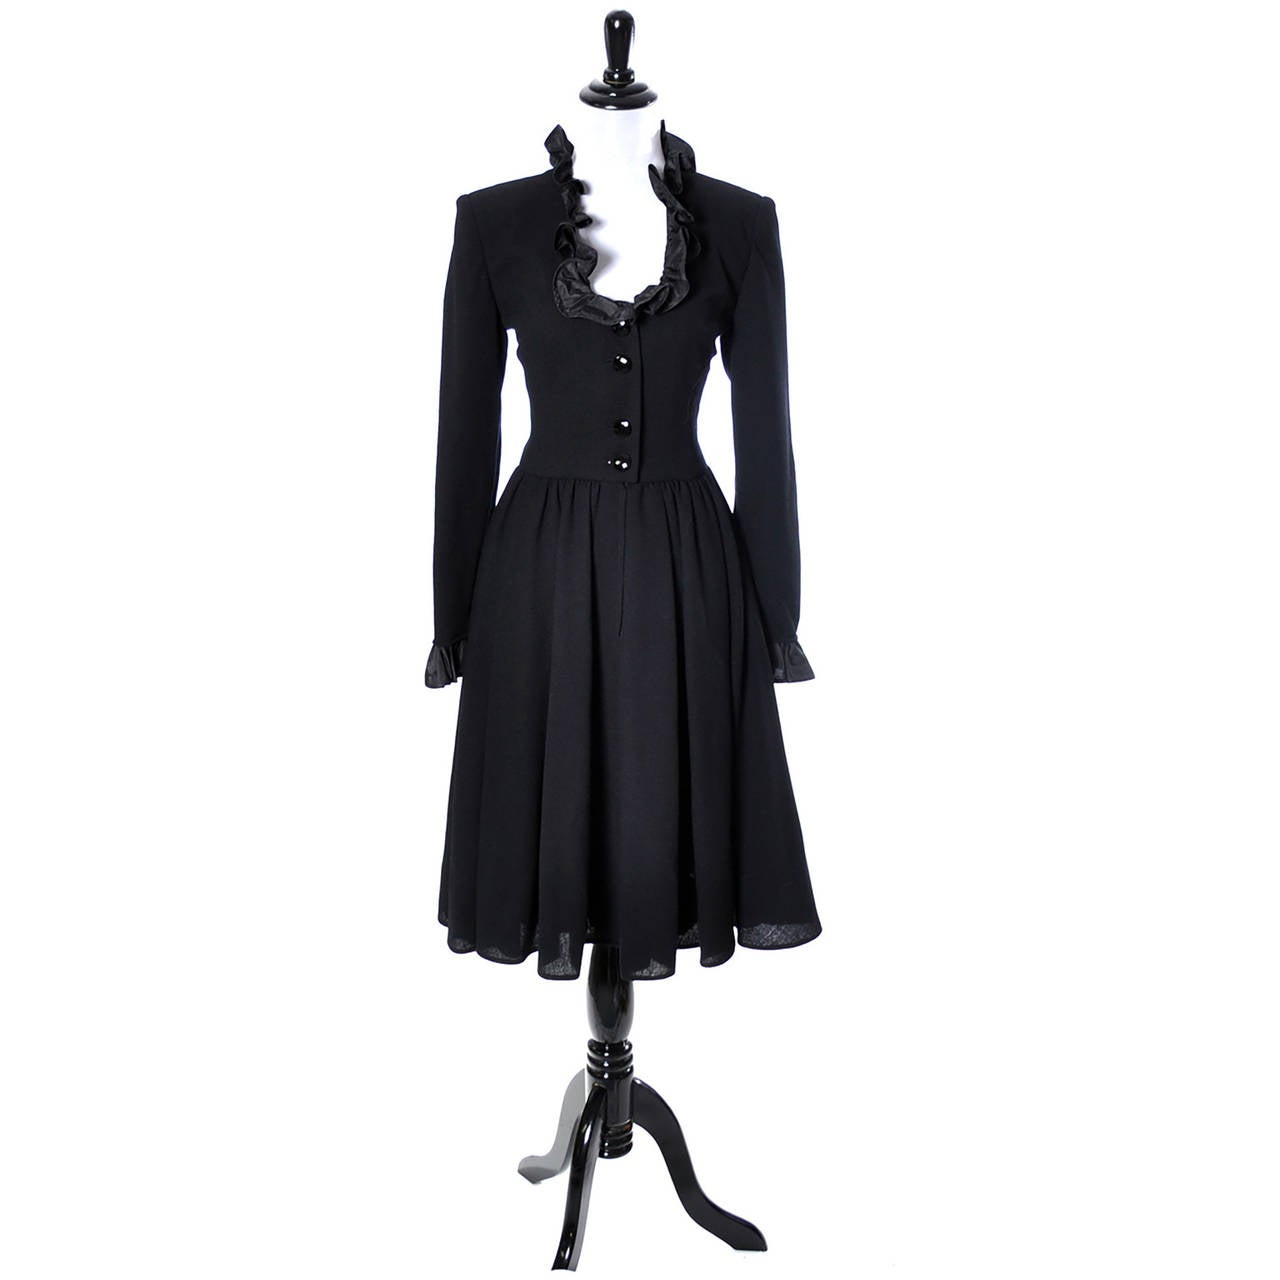 Vintage Valentino Black Wool Crepe Dress w/ Ruffled Taffeta Trim Size 6 In Excellent Condition For Sale In Portland, OR